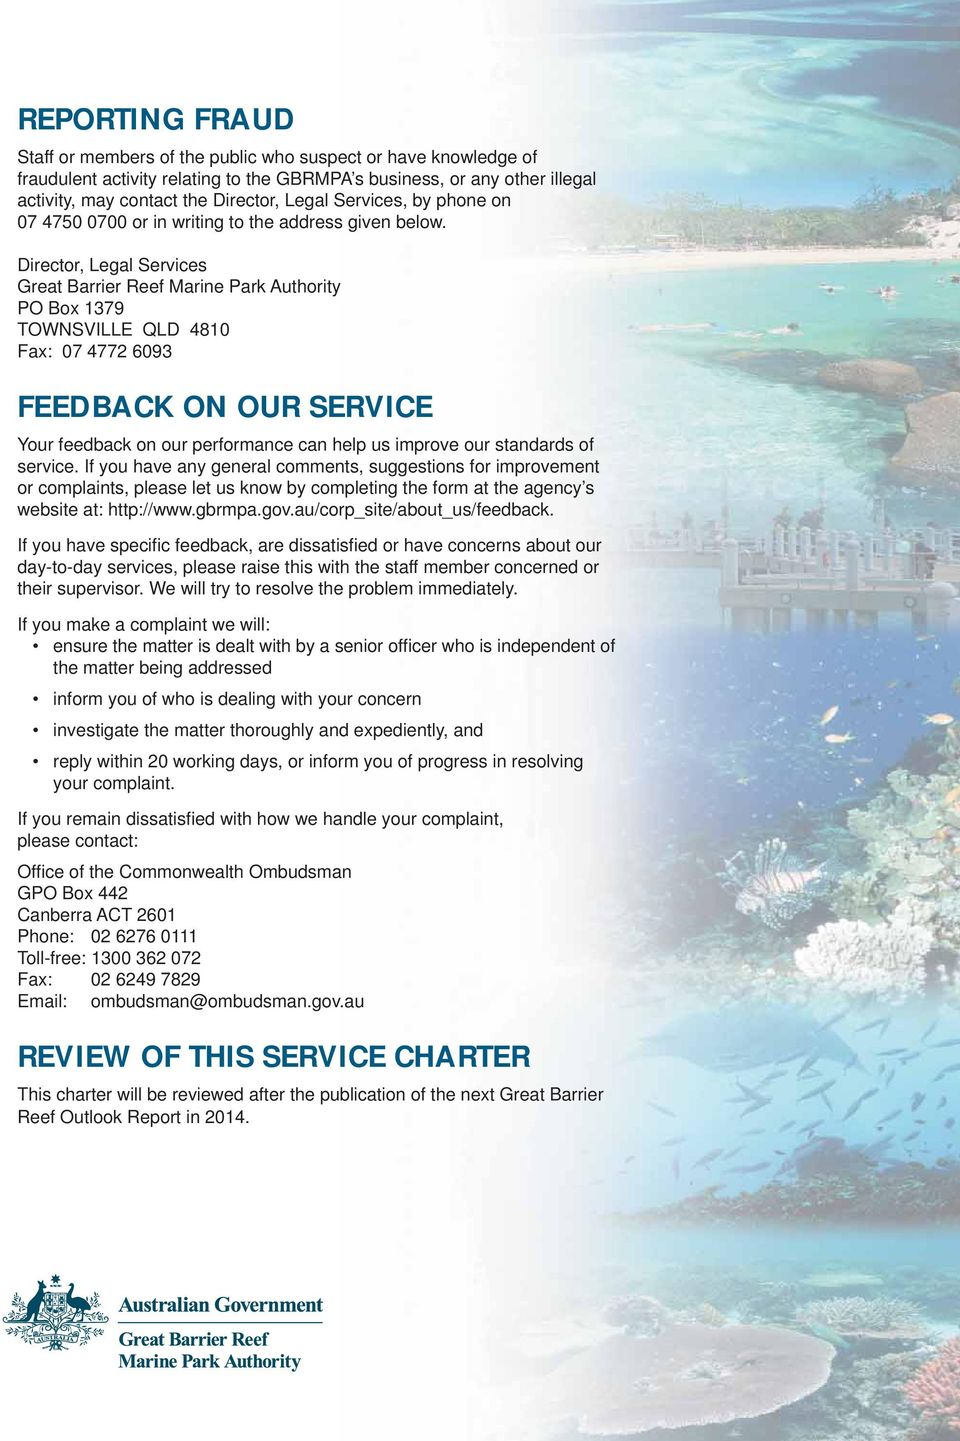 Director, Legal Services Great Barrier Reef Marine Park Authority PO Box 1379 TOWNSVILLE QLD 4810 Fax: 07 4772 6093 FEEDBACK ON OUR SERVICE Your feedback on our performance can help us improve our